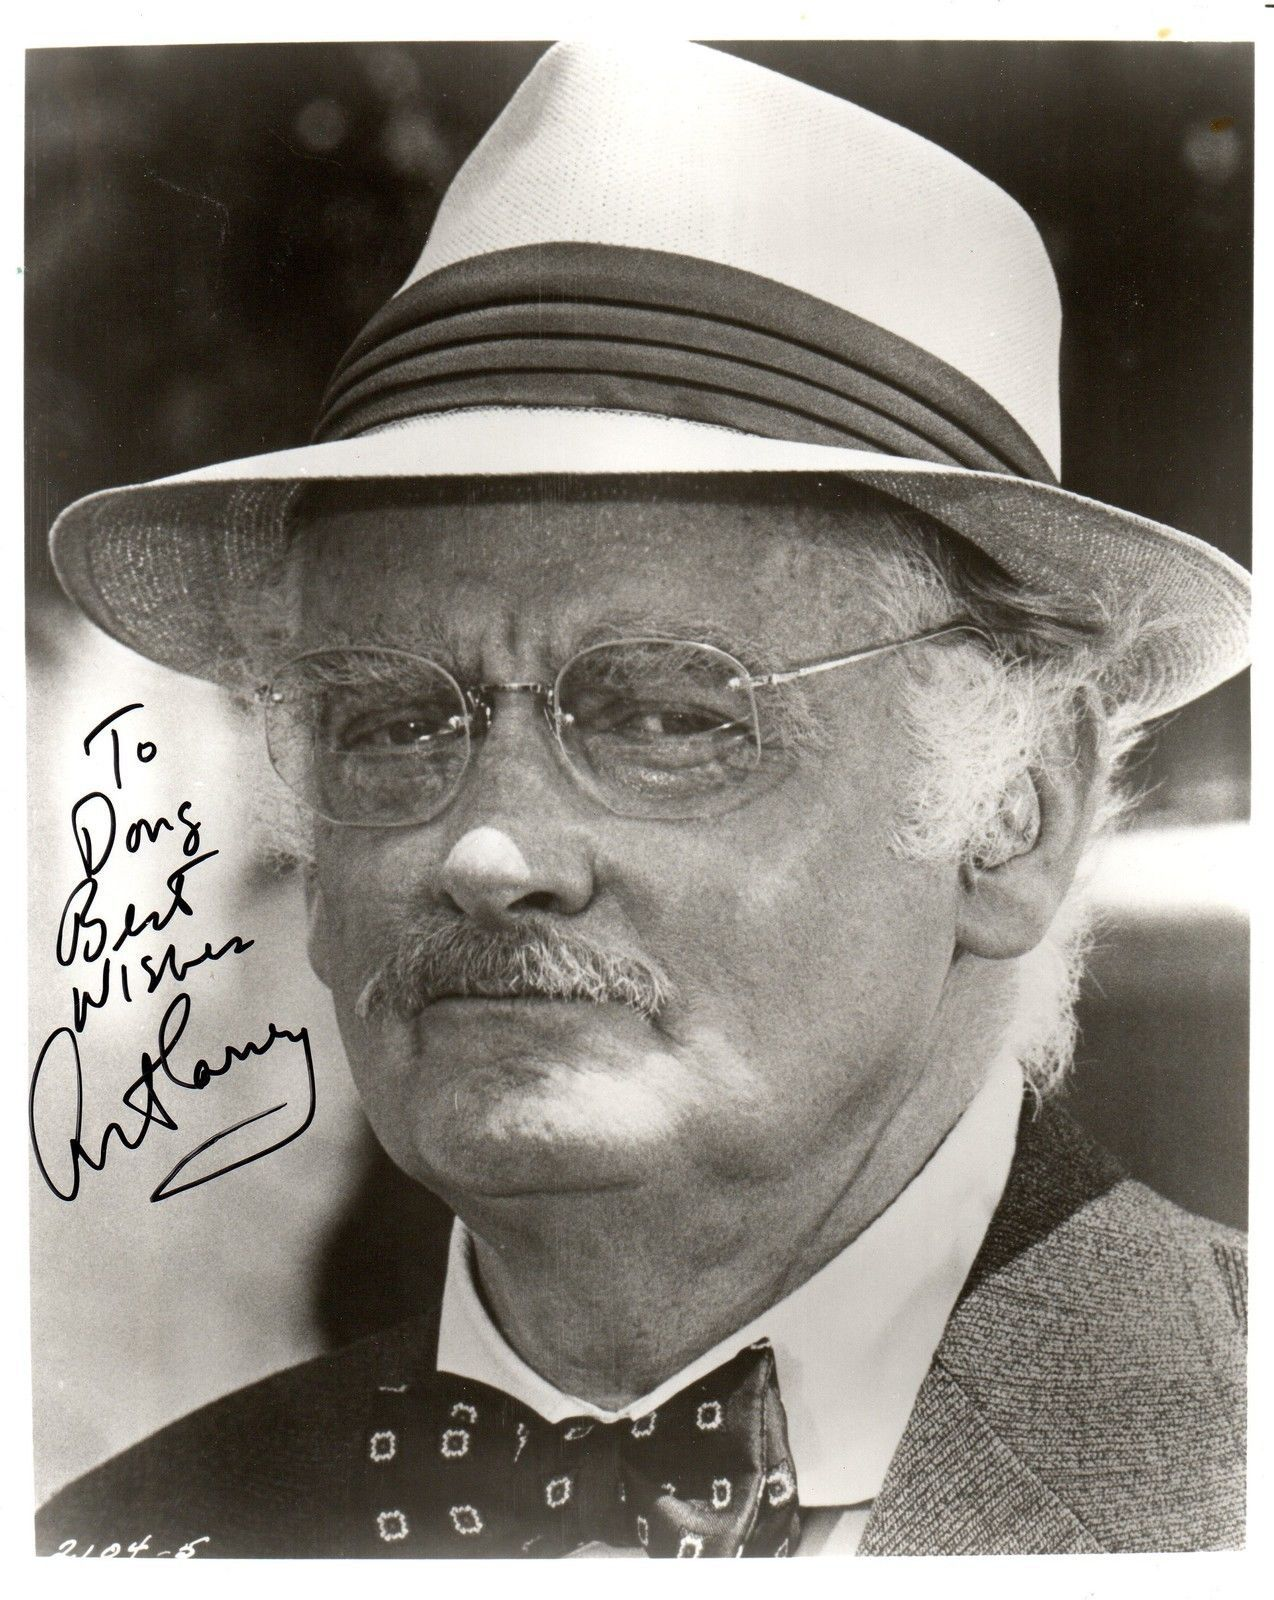 ART CARNEY, star of the Honeymooners, Signed 8x10 photograph, nice autograph